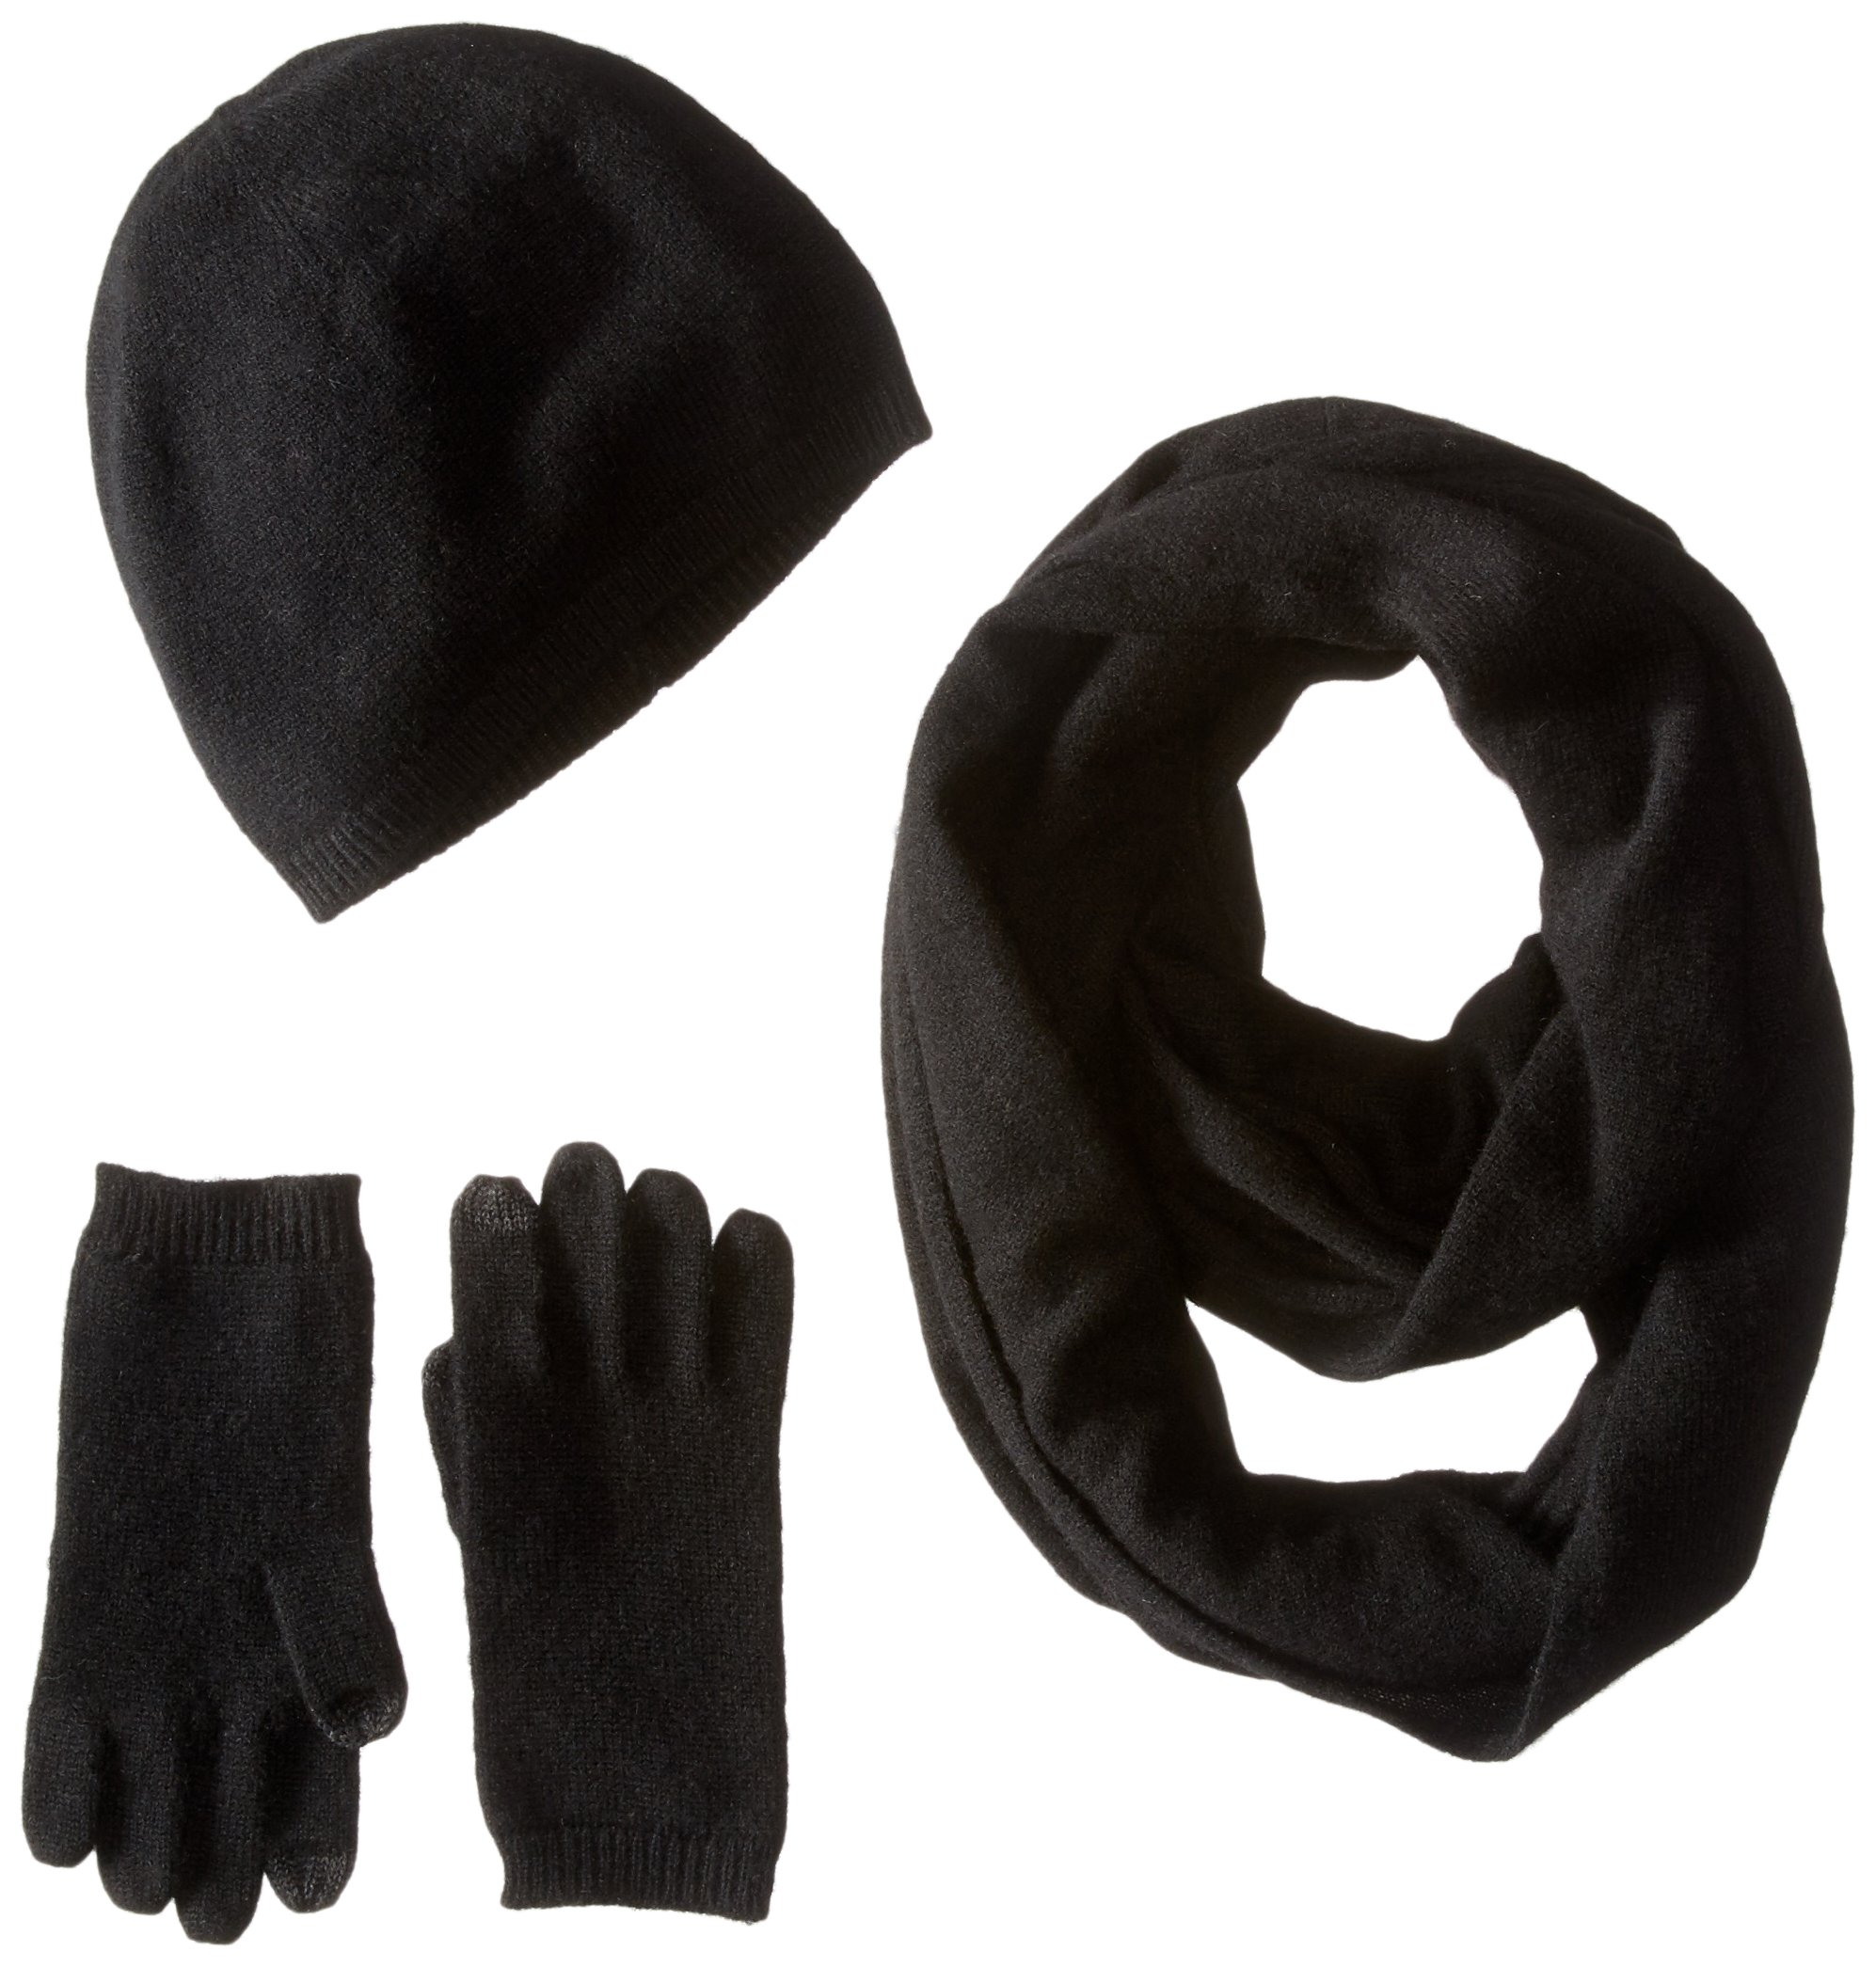 Sofia Cashmere Women's Gift Box Set - Hat, Smartphone Gloves, and Infinity Scarf, black, ONE